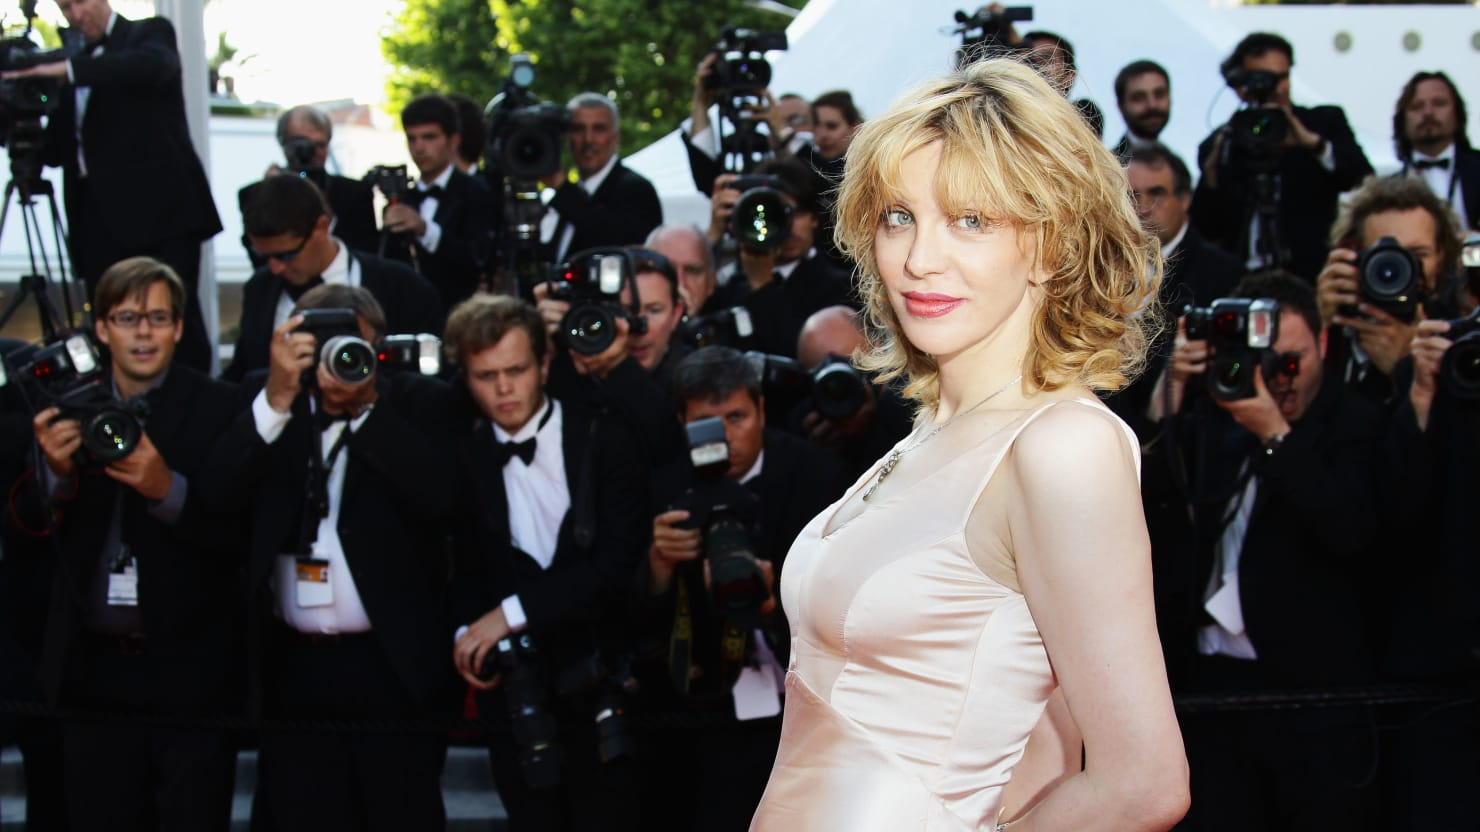 """CANNES, FRANCE - MAY 20:  Courtney Love attends the """"This Must Be The Place"""" premiere during the 64th Annual Cannes Film Festival at Palais des Festivals on May 20, 2011 in Cannes, France.  (Photo by Vittorio Zunino Celotto/Getty Images)"""